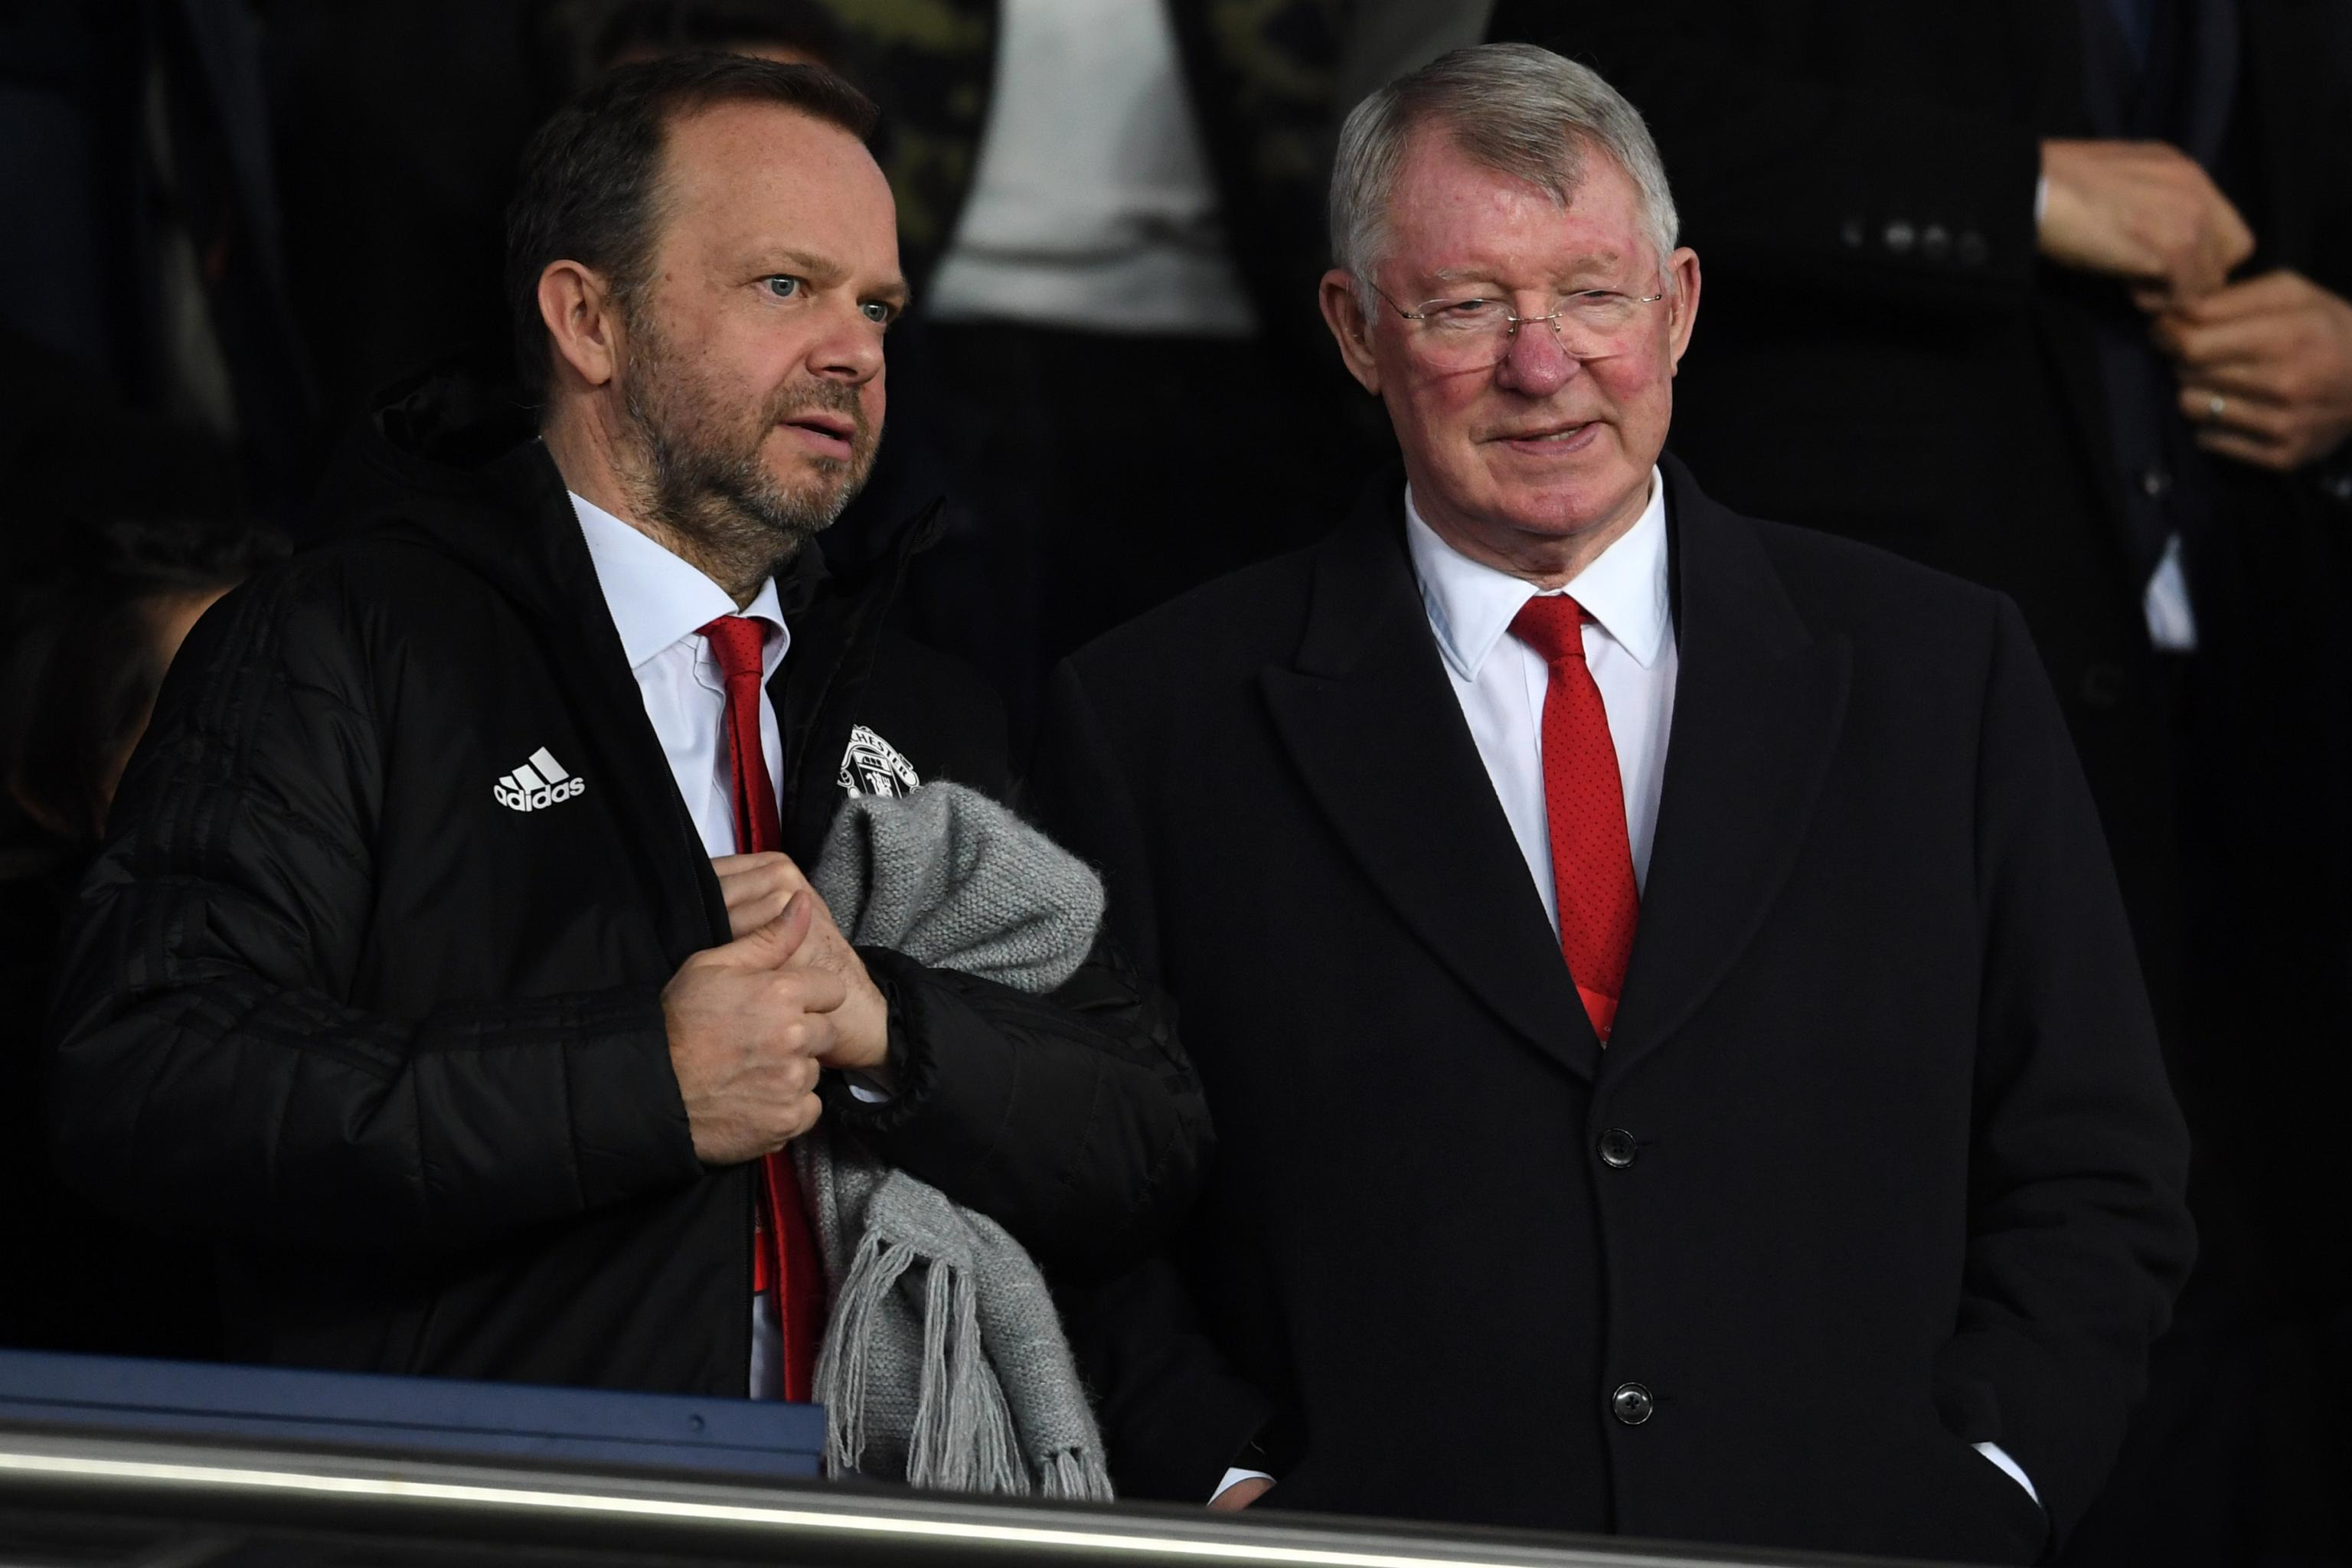 Ed Woodward On Manchester United We Are Not Yet Where We Want To Be Bleacher Report Latest News Videos And Highlights